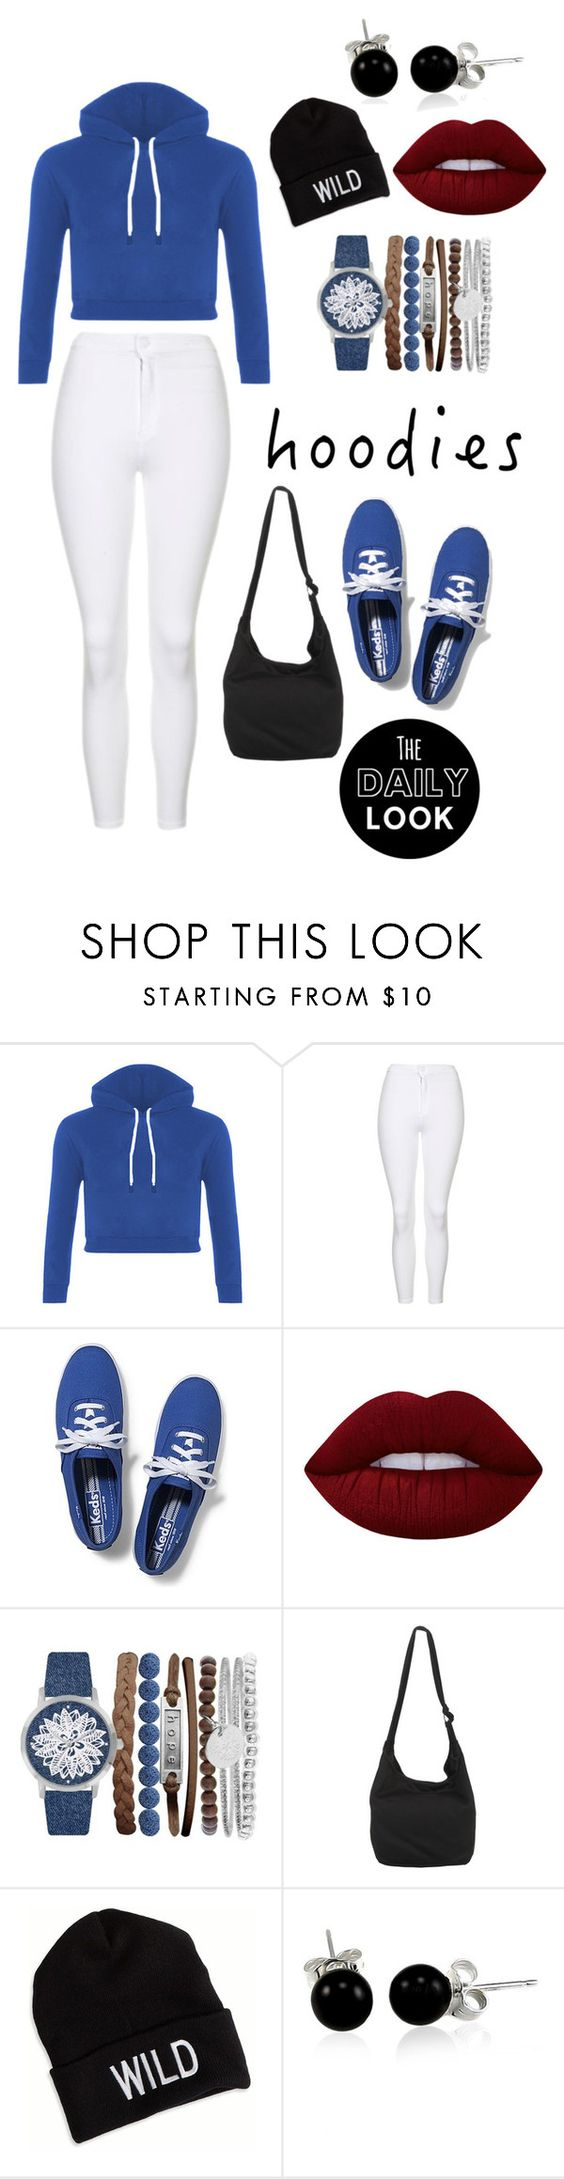 """Hoodies ☁"" by dicksoutforharambe ❤ liked on Polyvore featuring Topshop, Keds, Lime Crime, Jessica Carlyle, American Eagle Outfitters and Bling Jewelry"